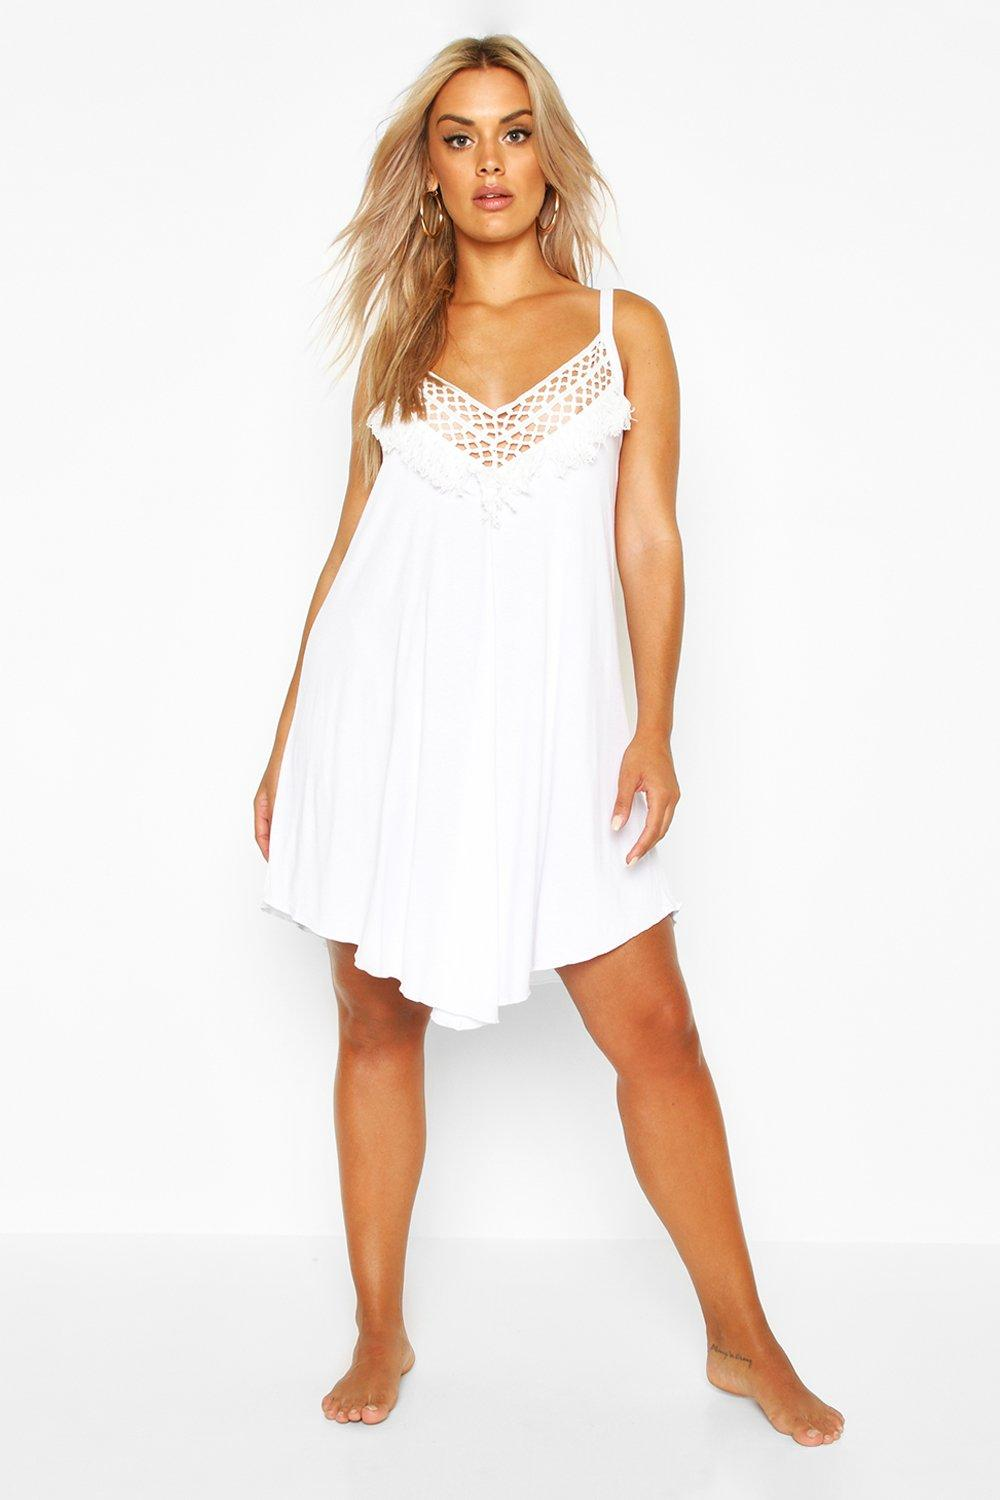 boohoo Womens Plus Crochet Detail Beach Dress - White - 18, White